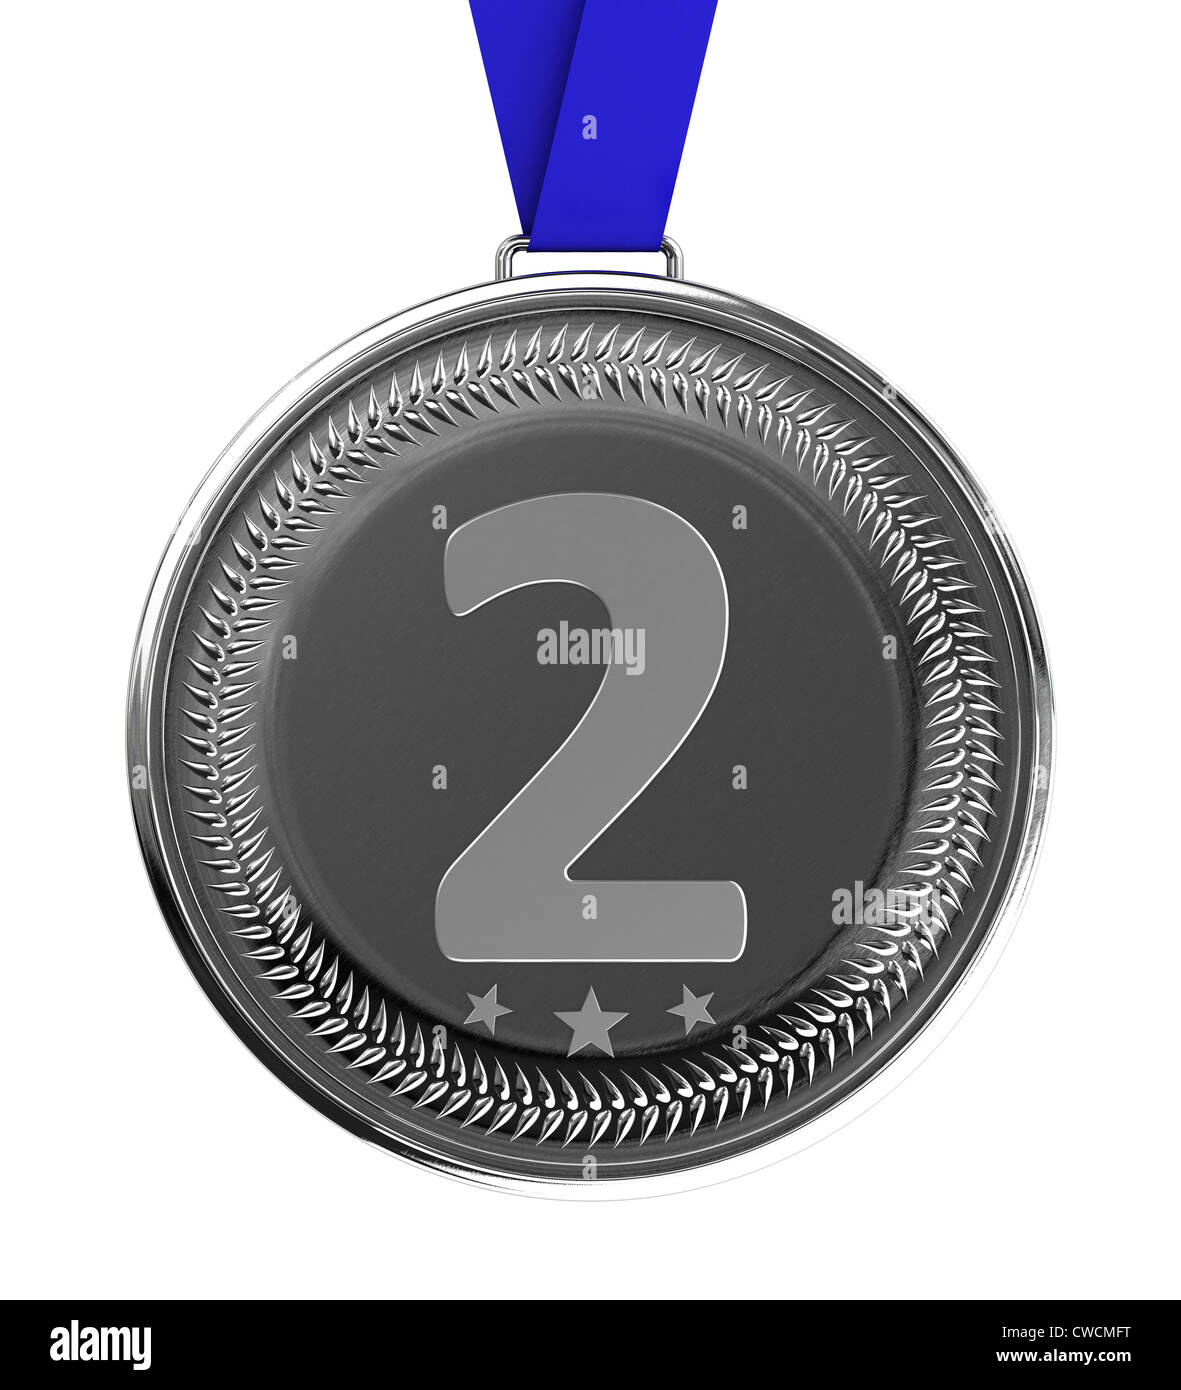 Silver medal - Stock Image